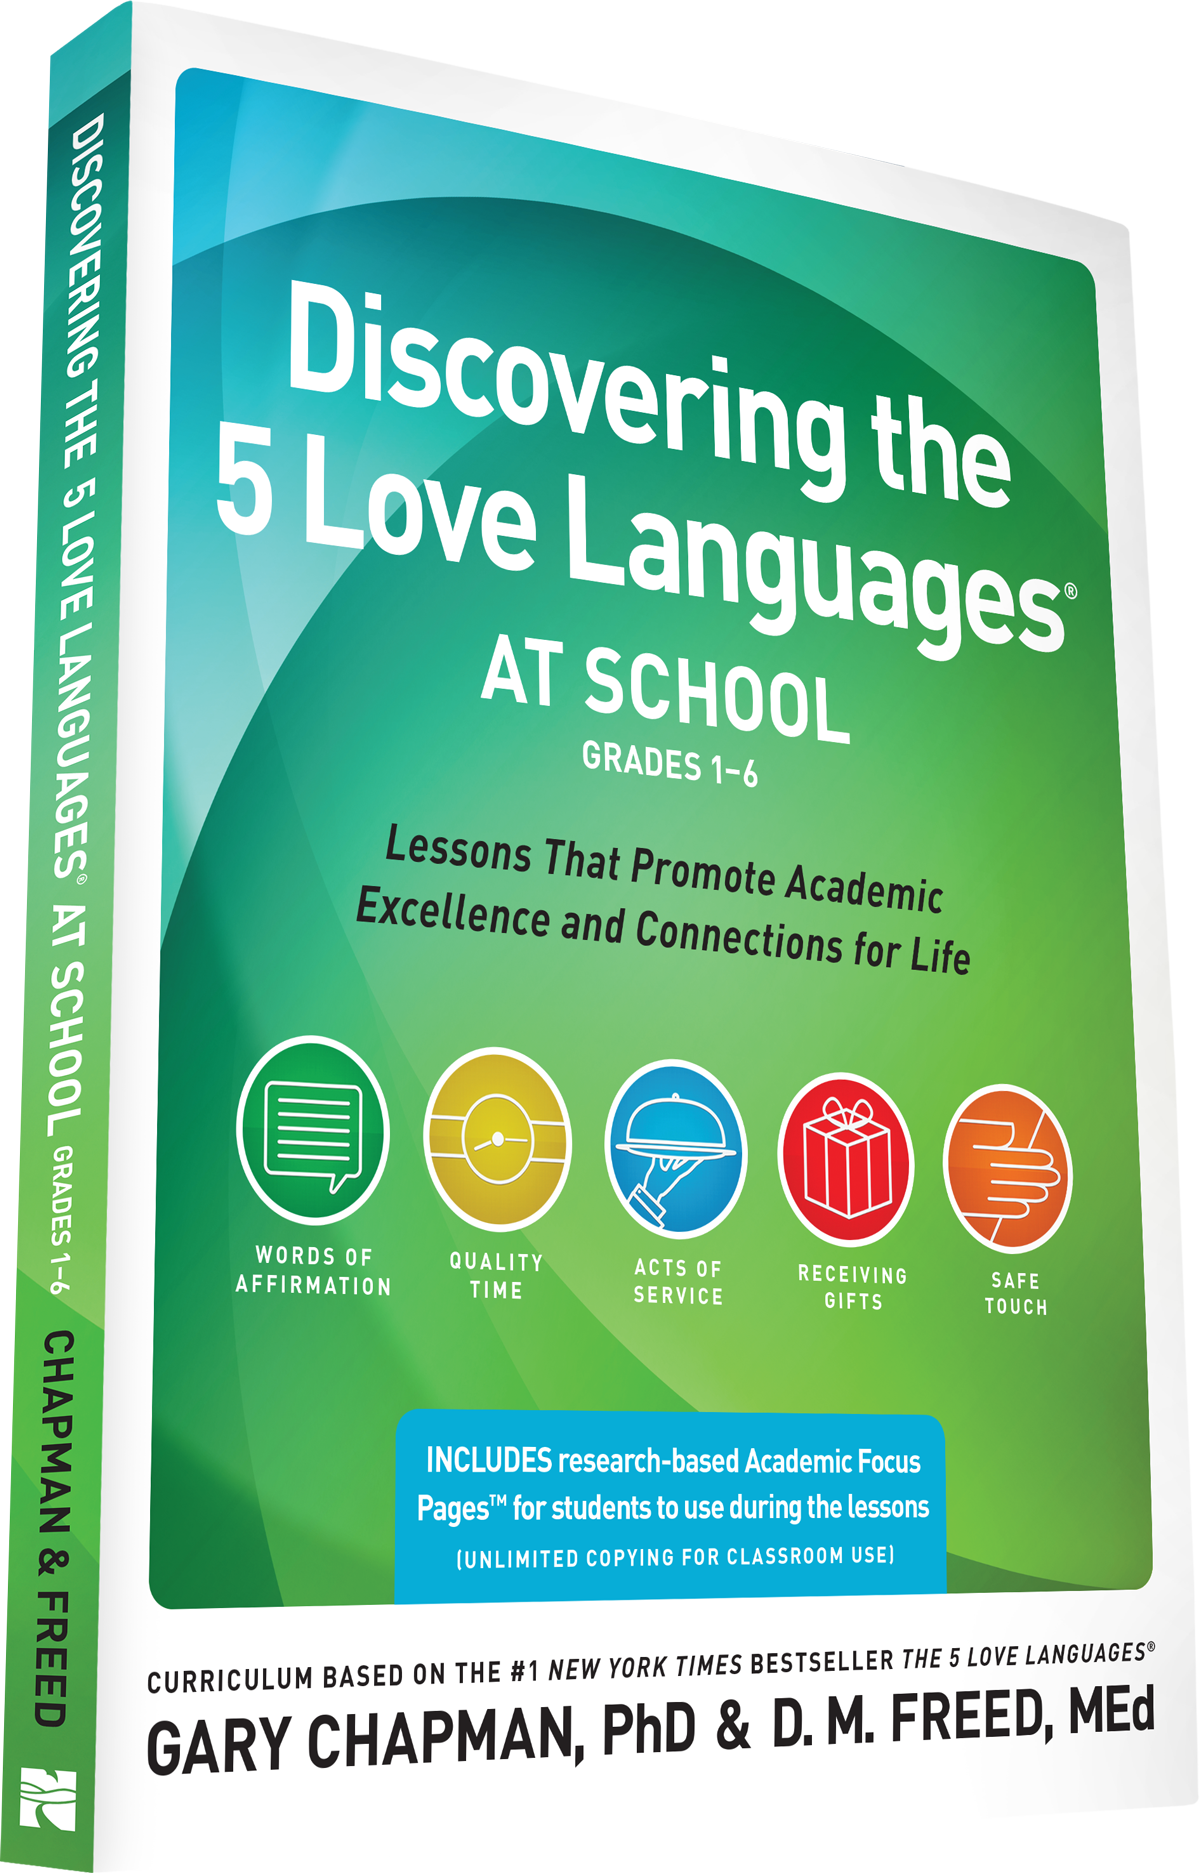 Discovering the 5 Love Languages at School (Grades 1-6)